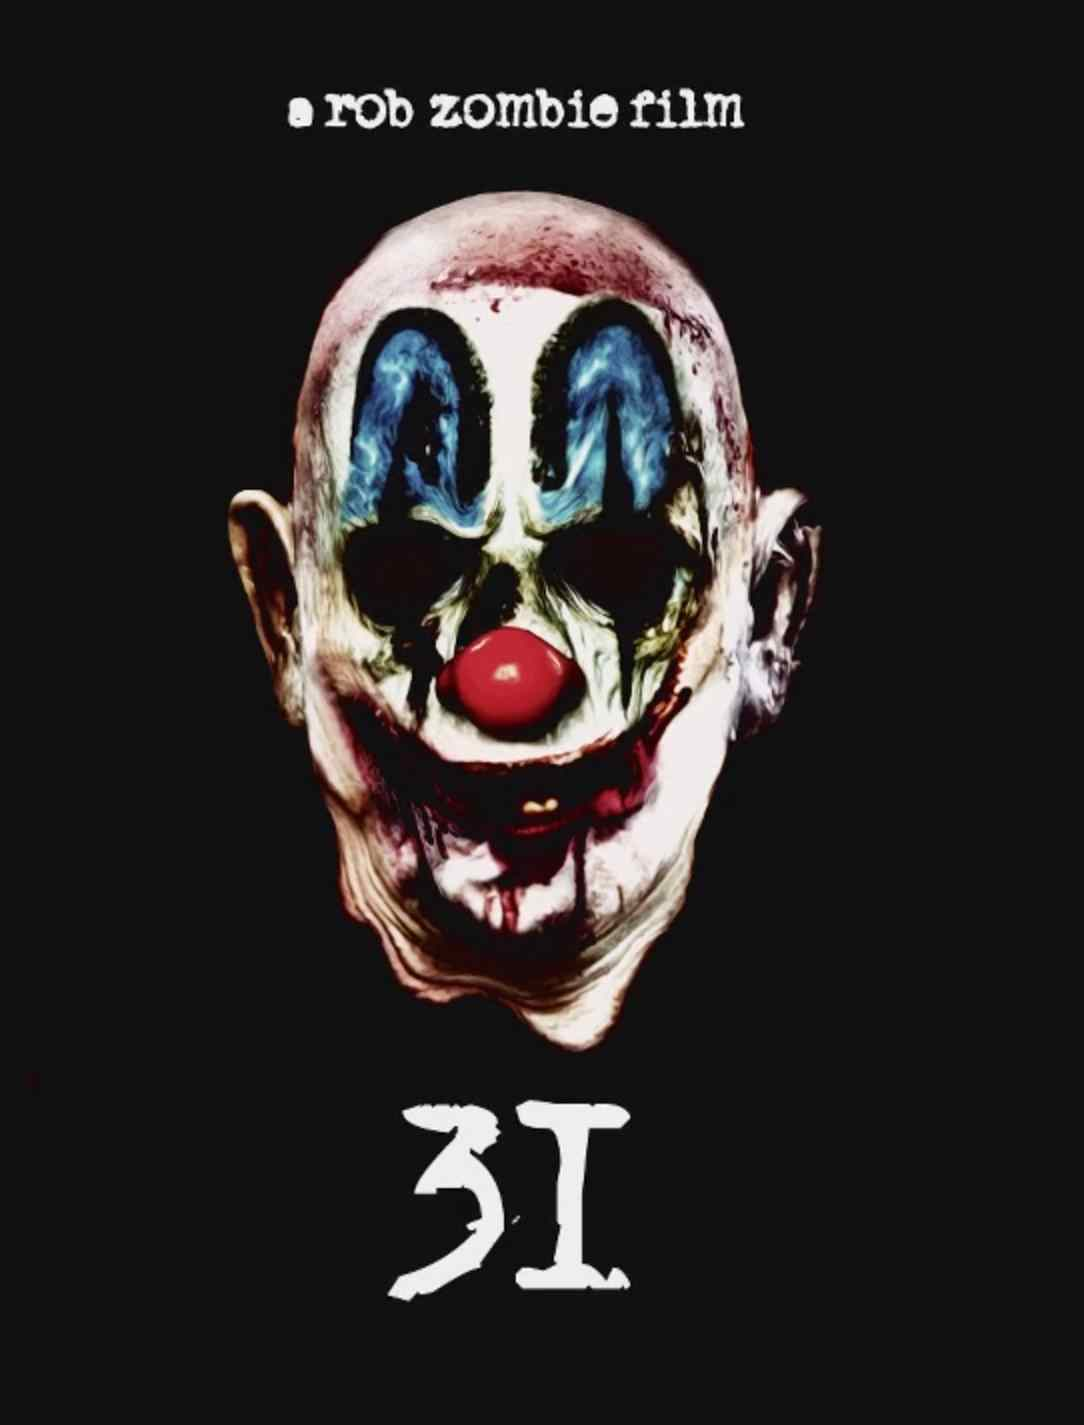 Psyhco-Head Poster art for the Rob Zombie film 31.